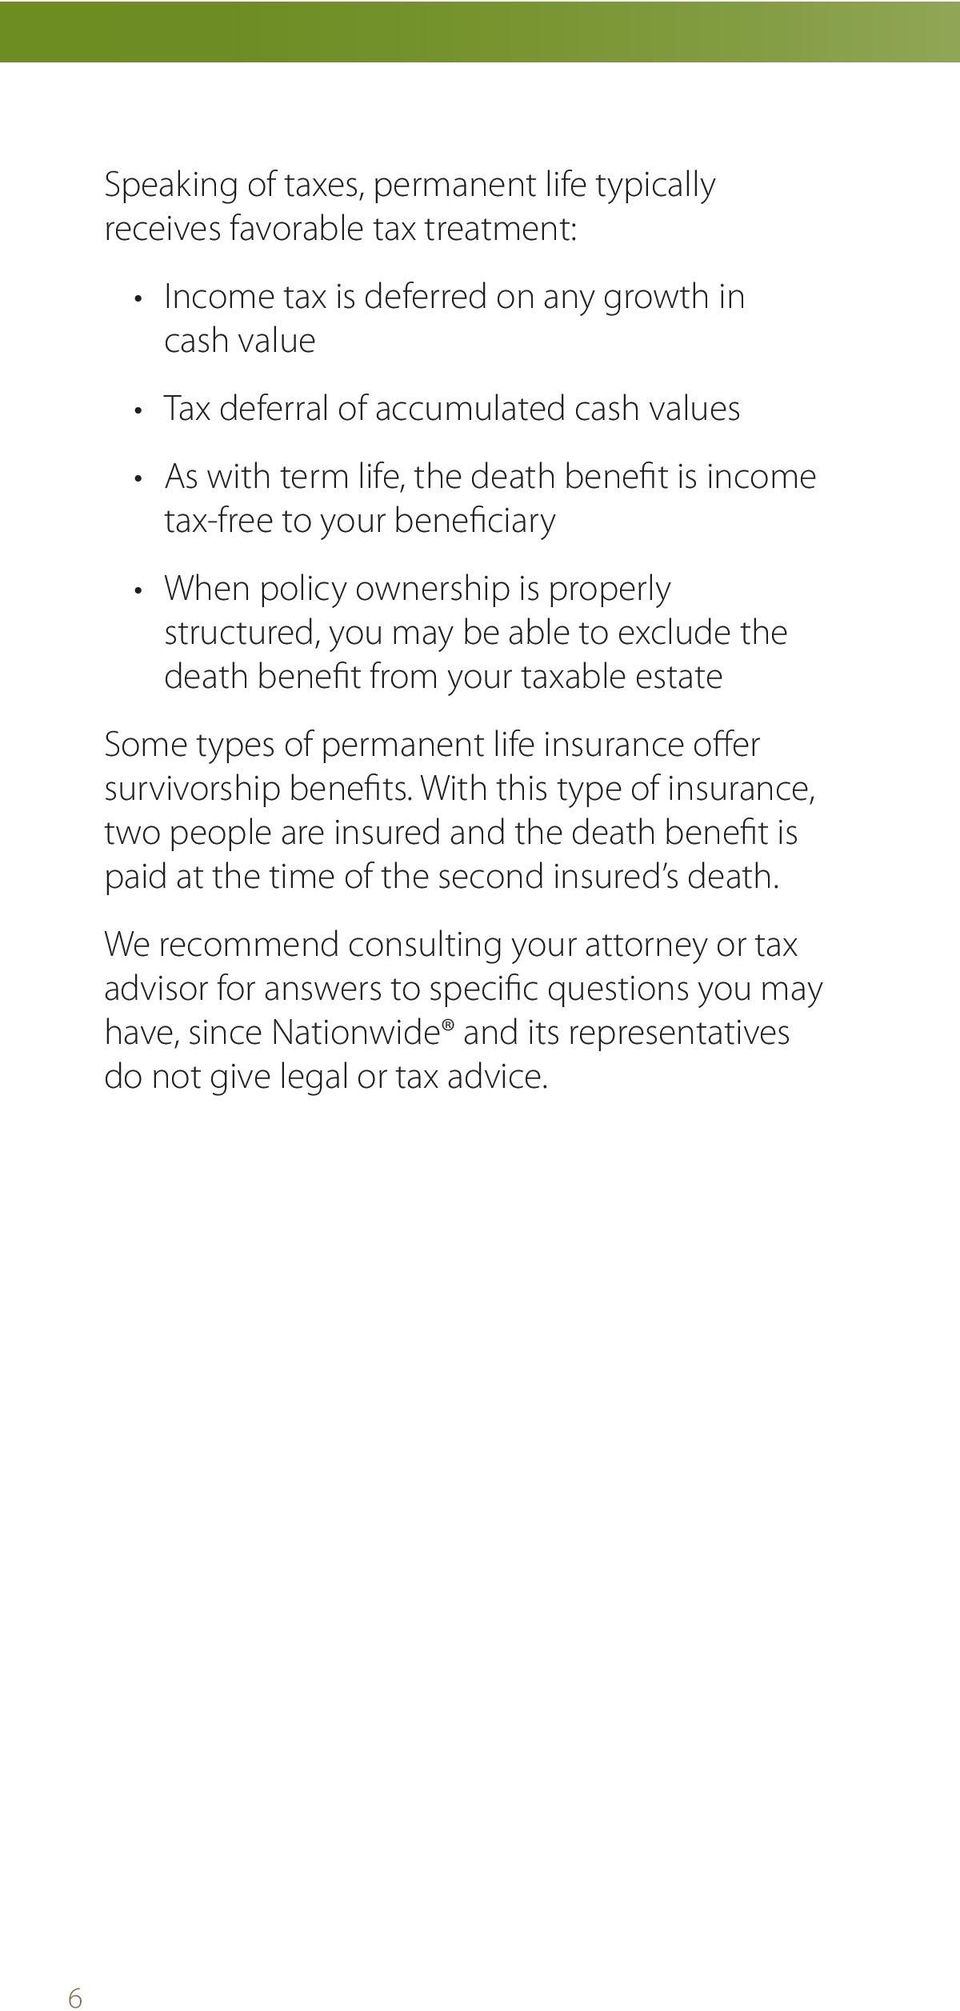 Some types of permanent life insurance offer survivorship benefits.